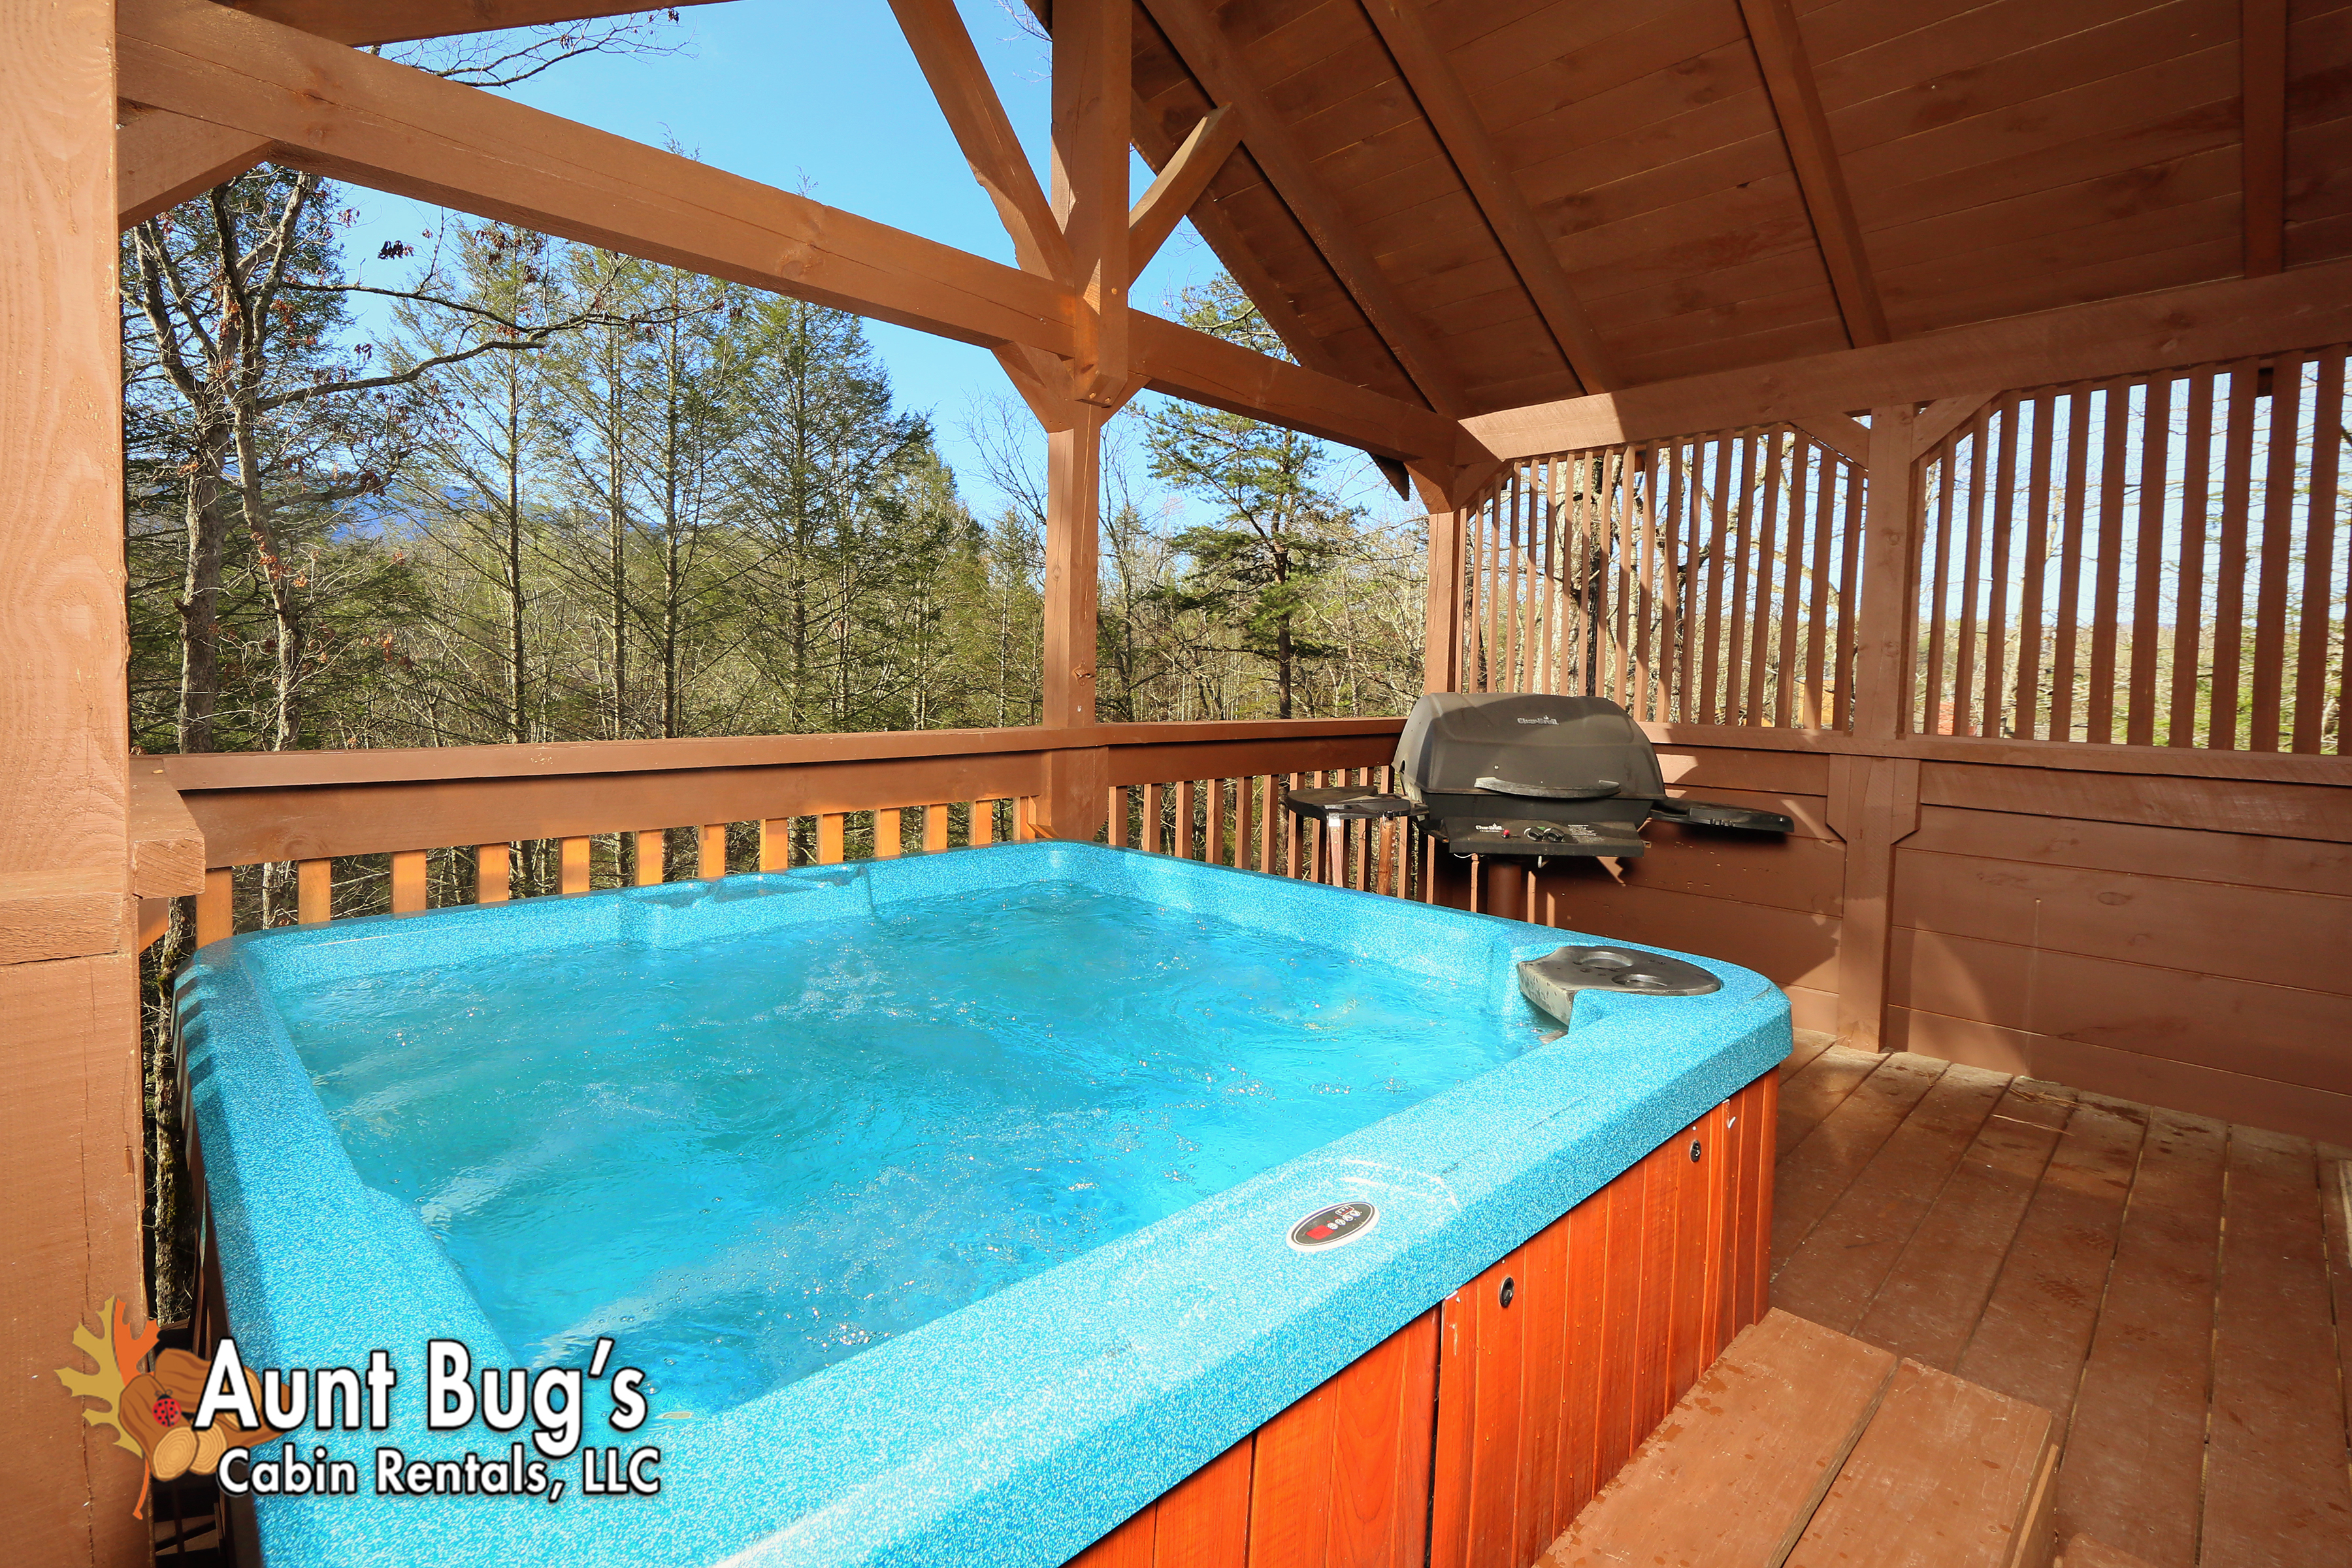 property tennessee pool vacation indoor cosby in around rental cabins redawning with poolin